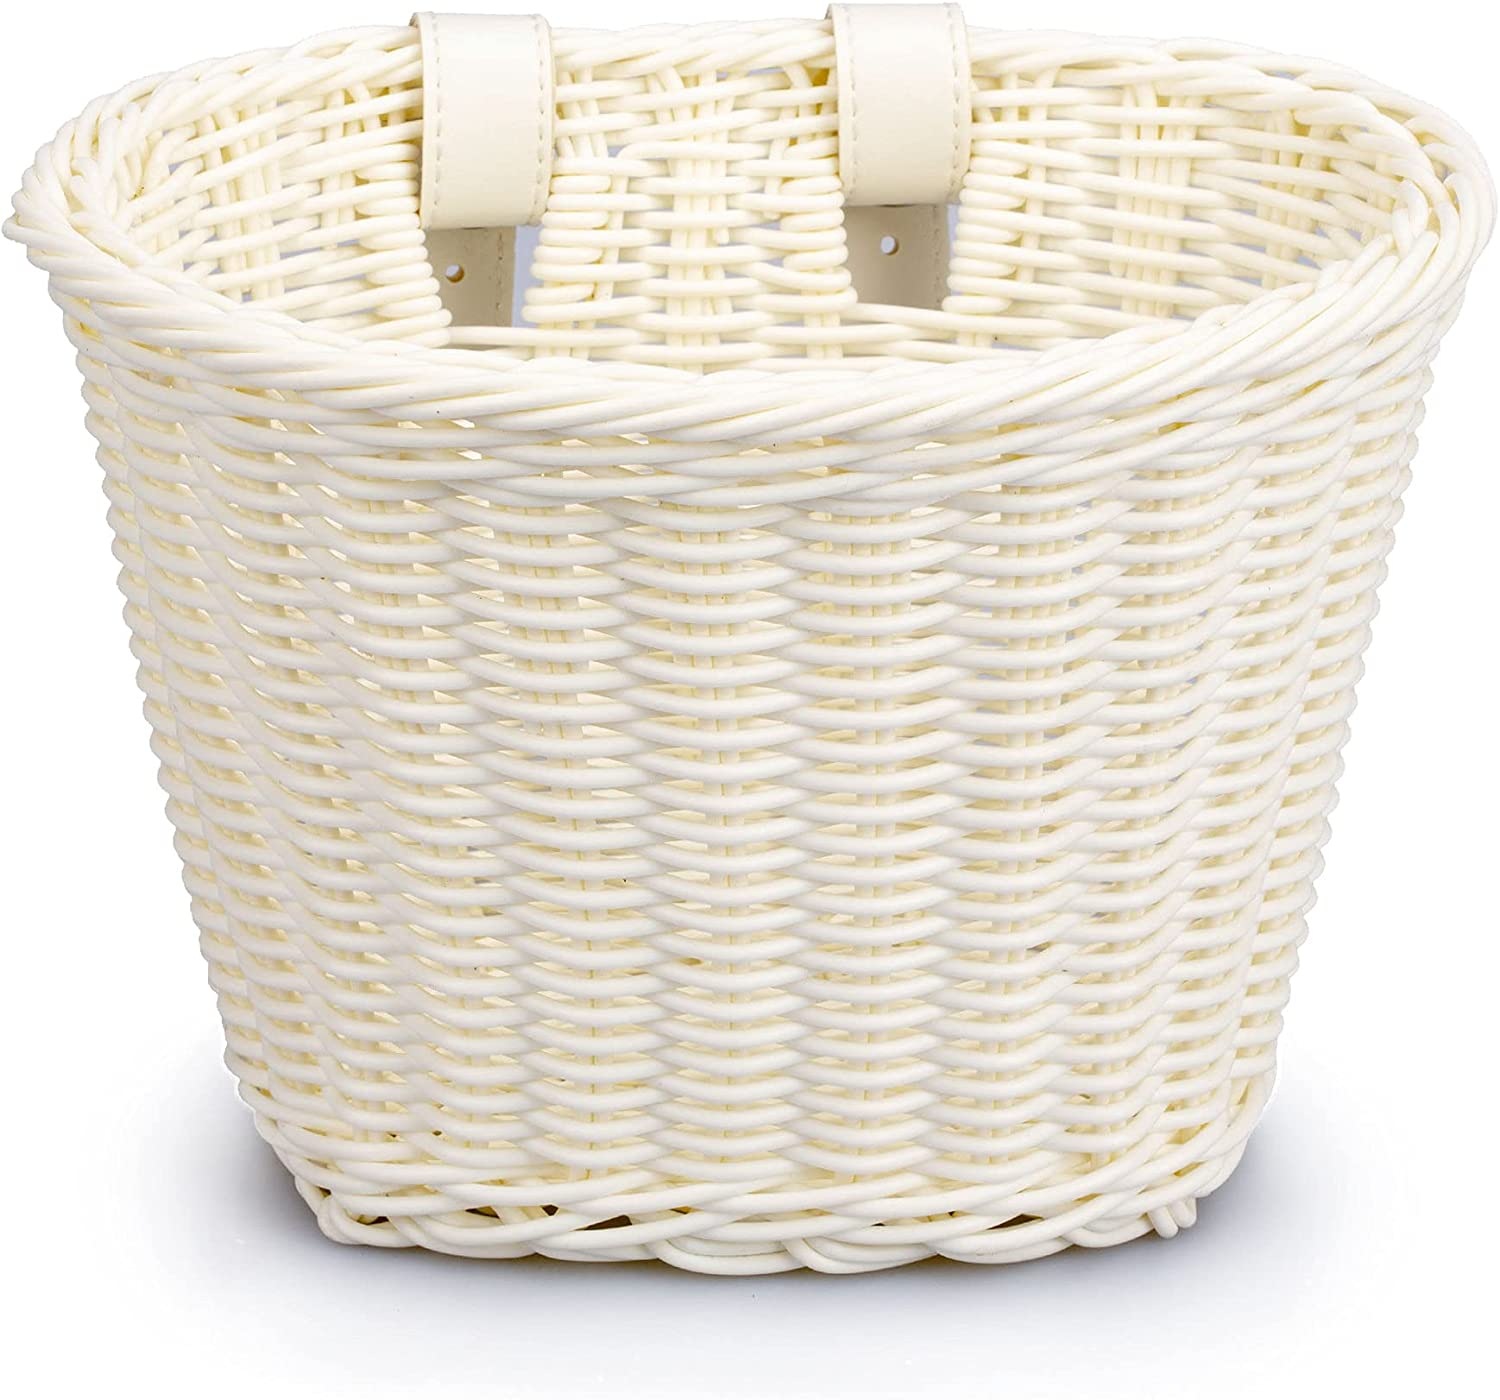 Bike Front Basket Tucson Mall Girls Boys Small Sales results No. 1 Woven Kids Gifts Plastic Hand